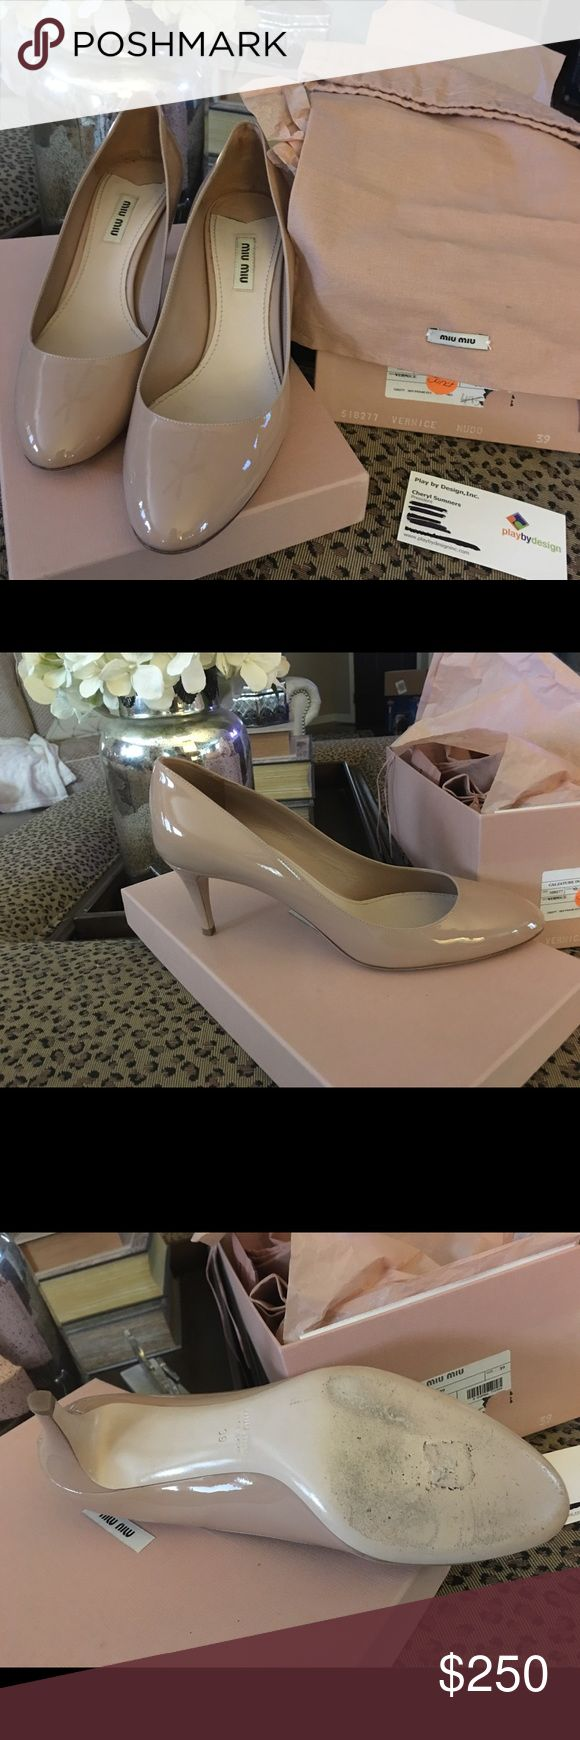 Miu miu pumps nude patent Worn once.  Like new with box.  Size 39 nude patent pumps.  Paid 495 on sale. Retail 990 Miu Miu Shoes Heels